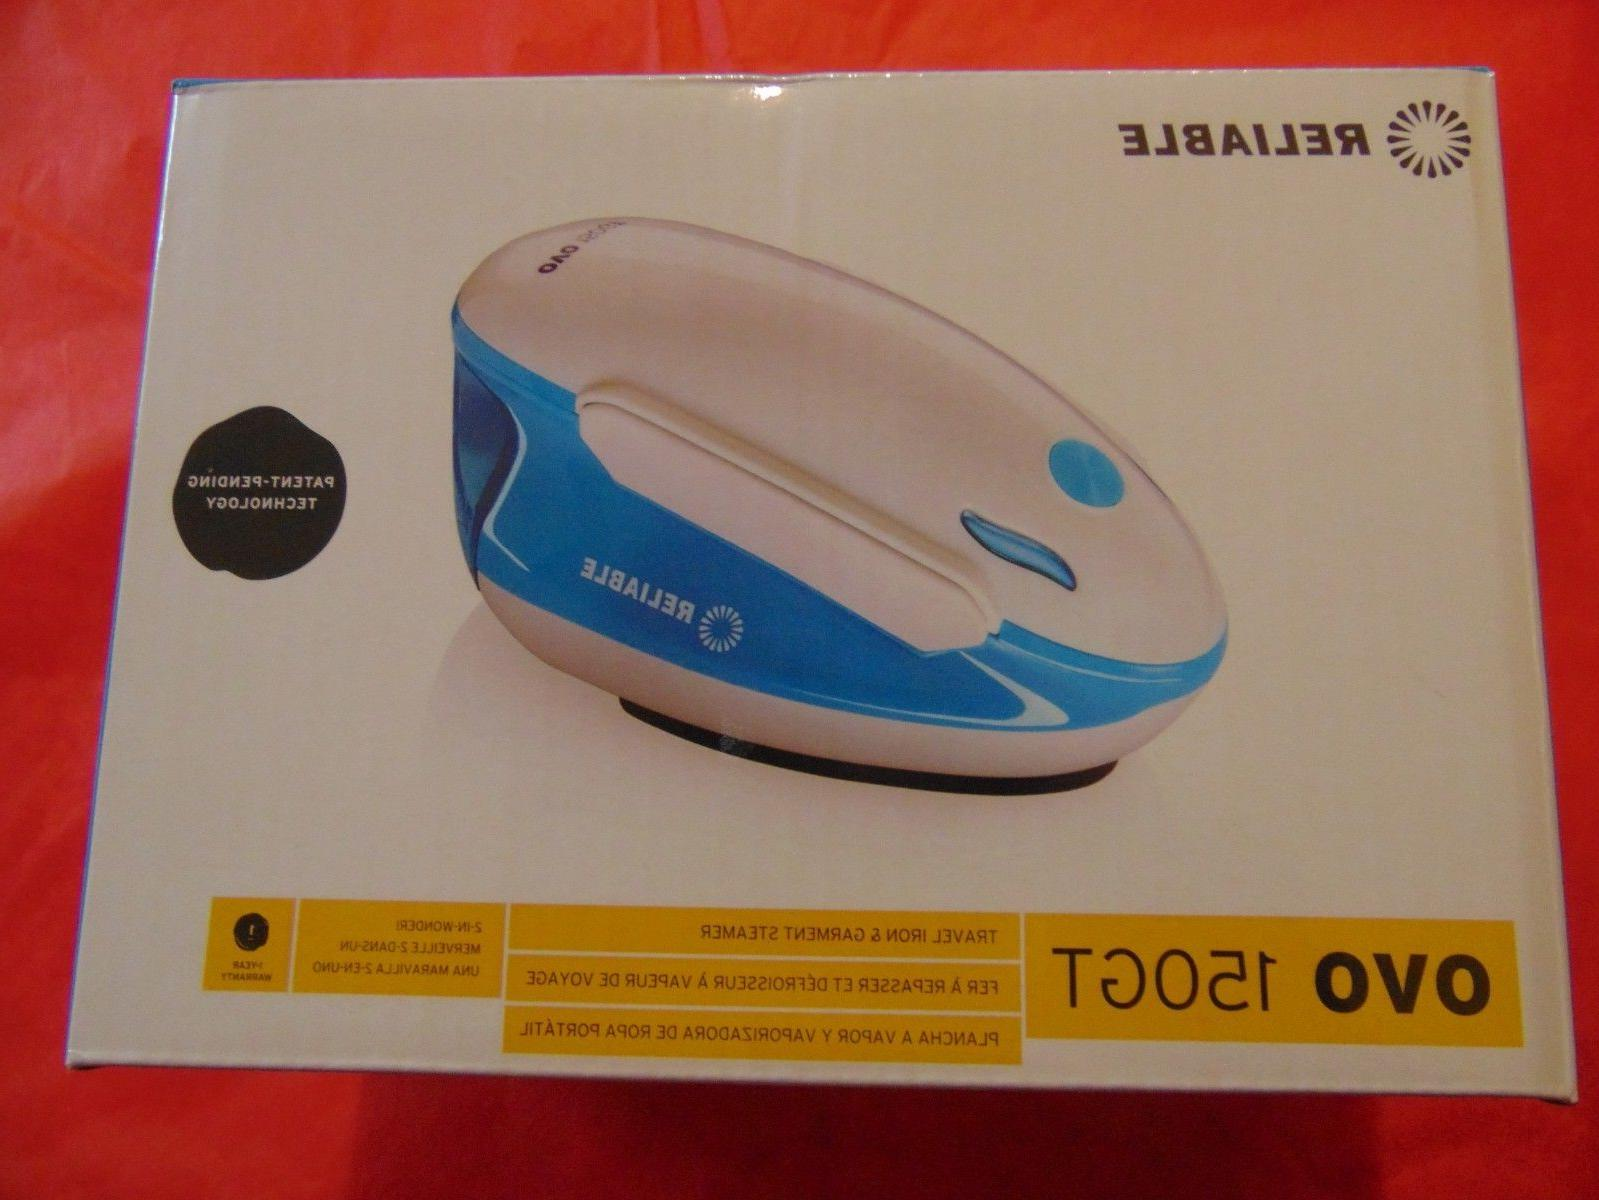 NEVER OPENED!  Reliable Ovo 150GT PORTABLE Steam Iron/Garmen